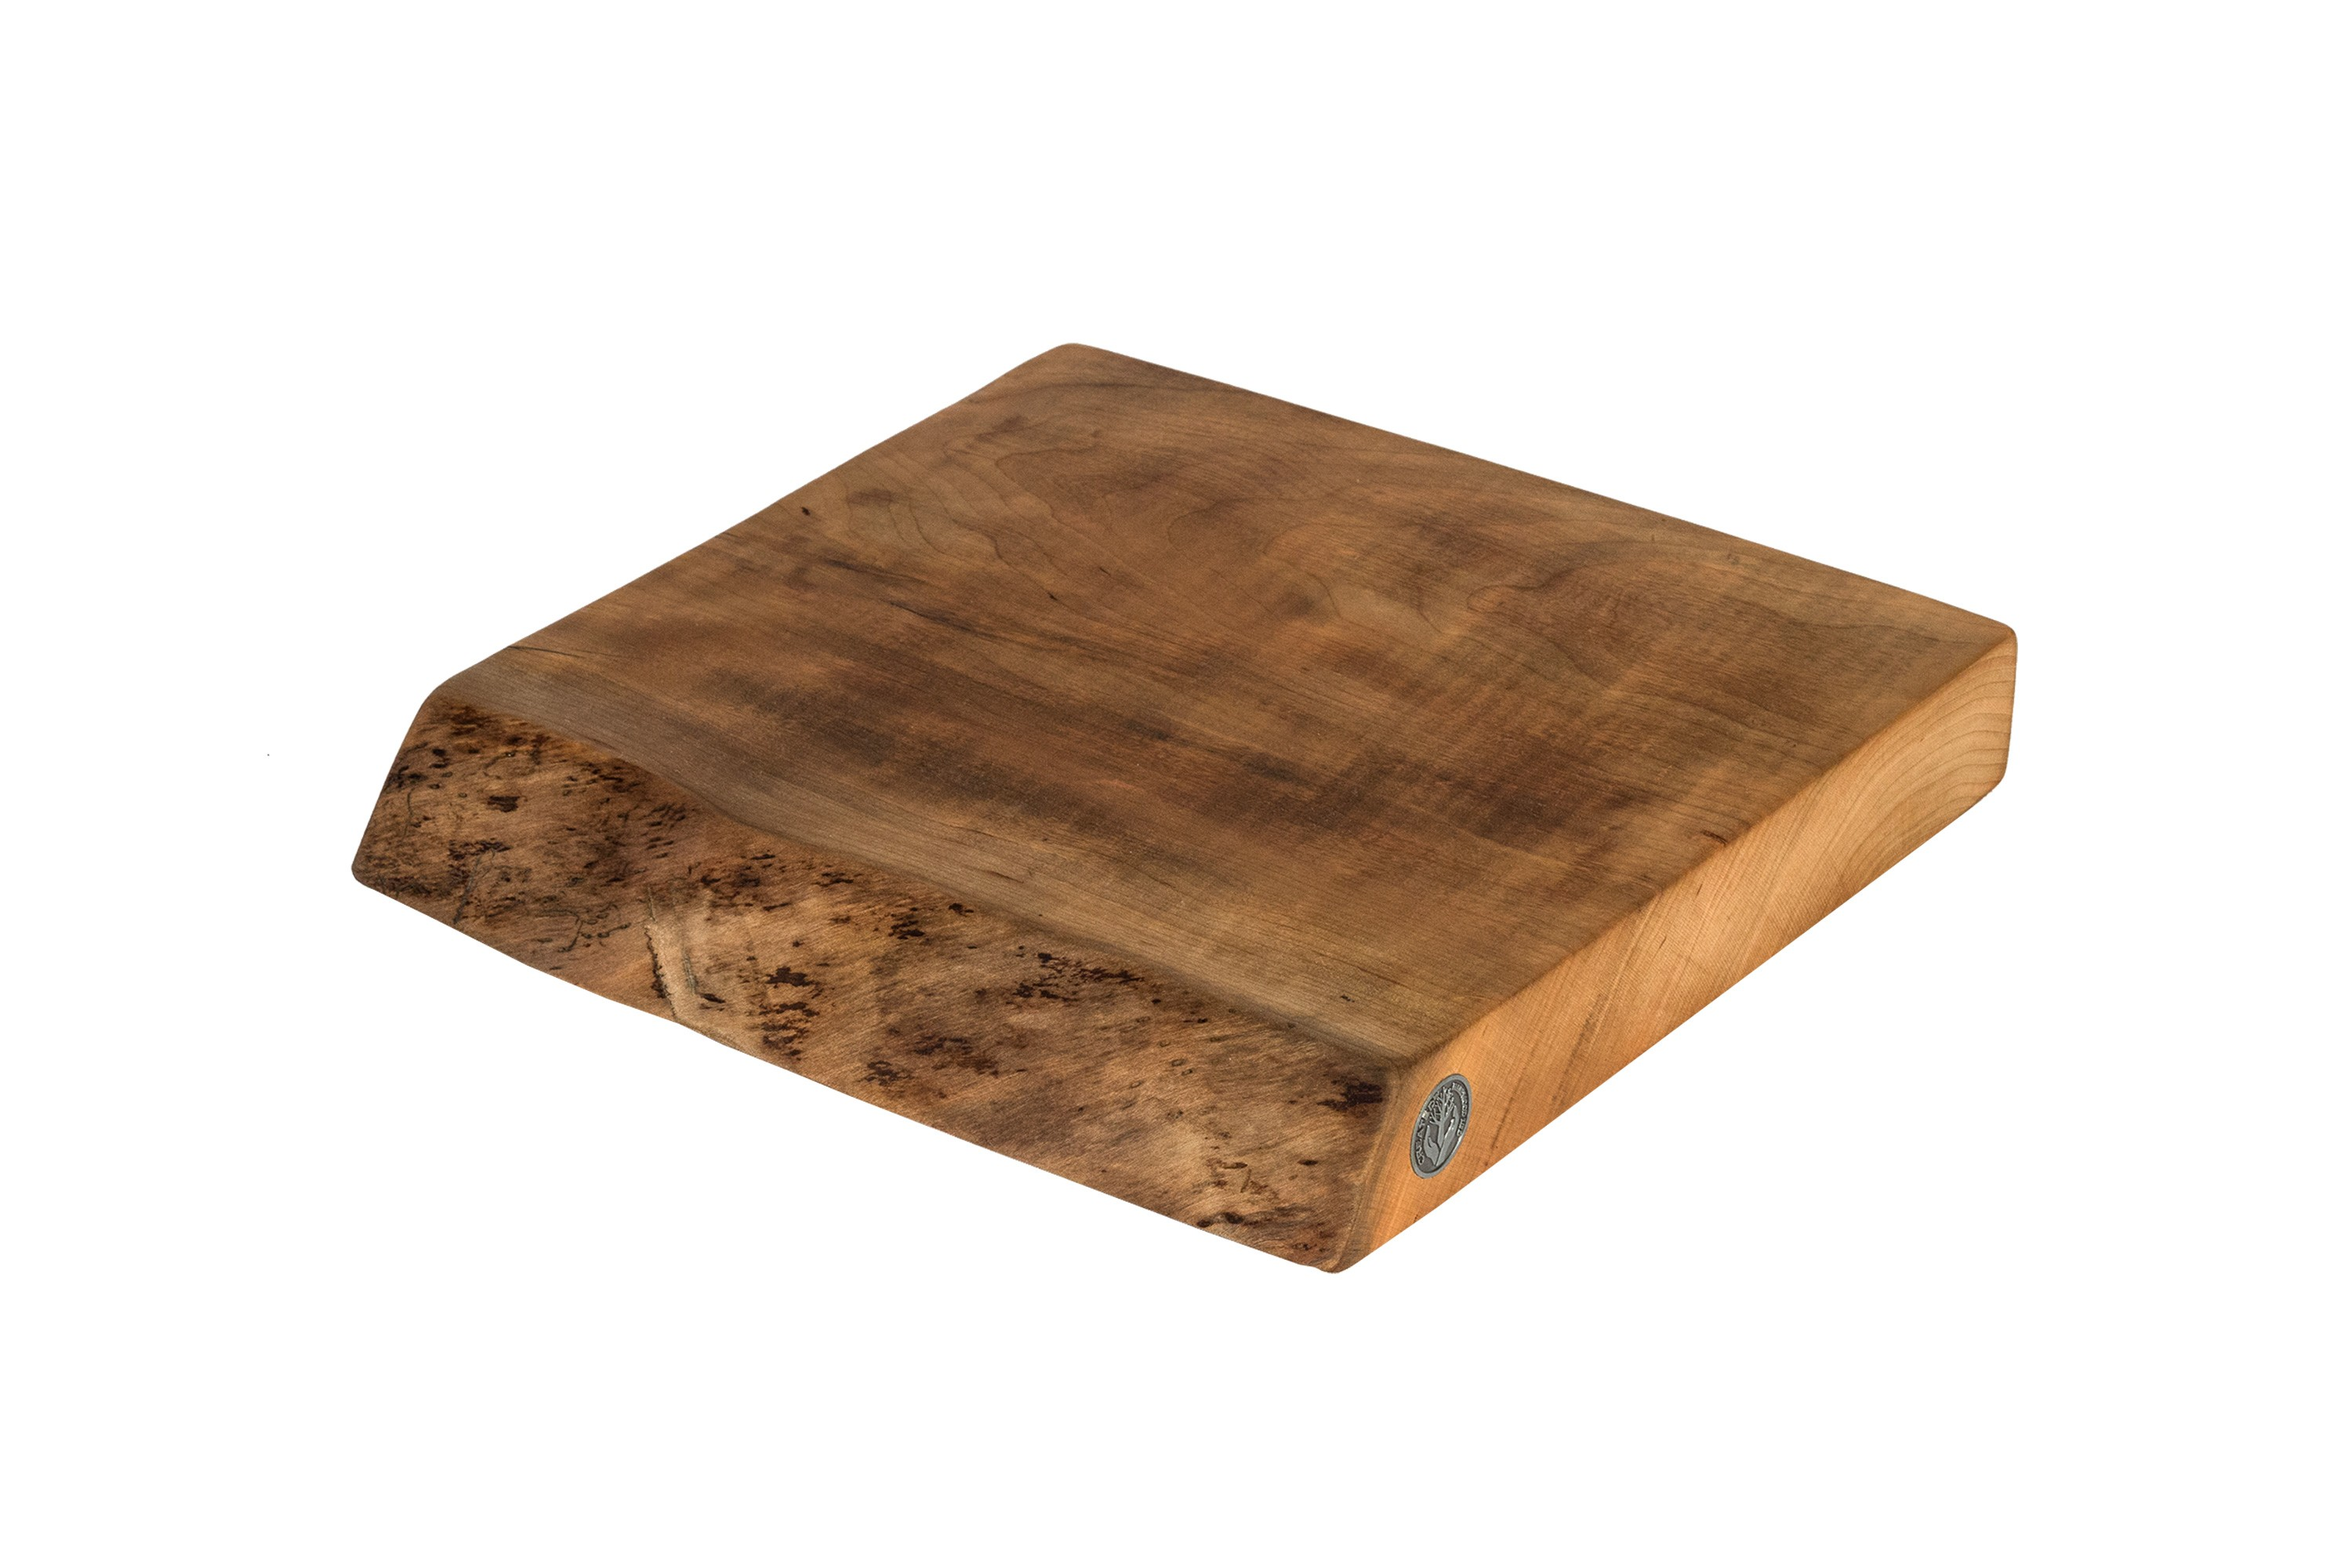 Live Edge Cherry Cutting Board #069- 12